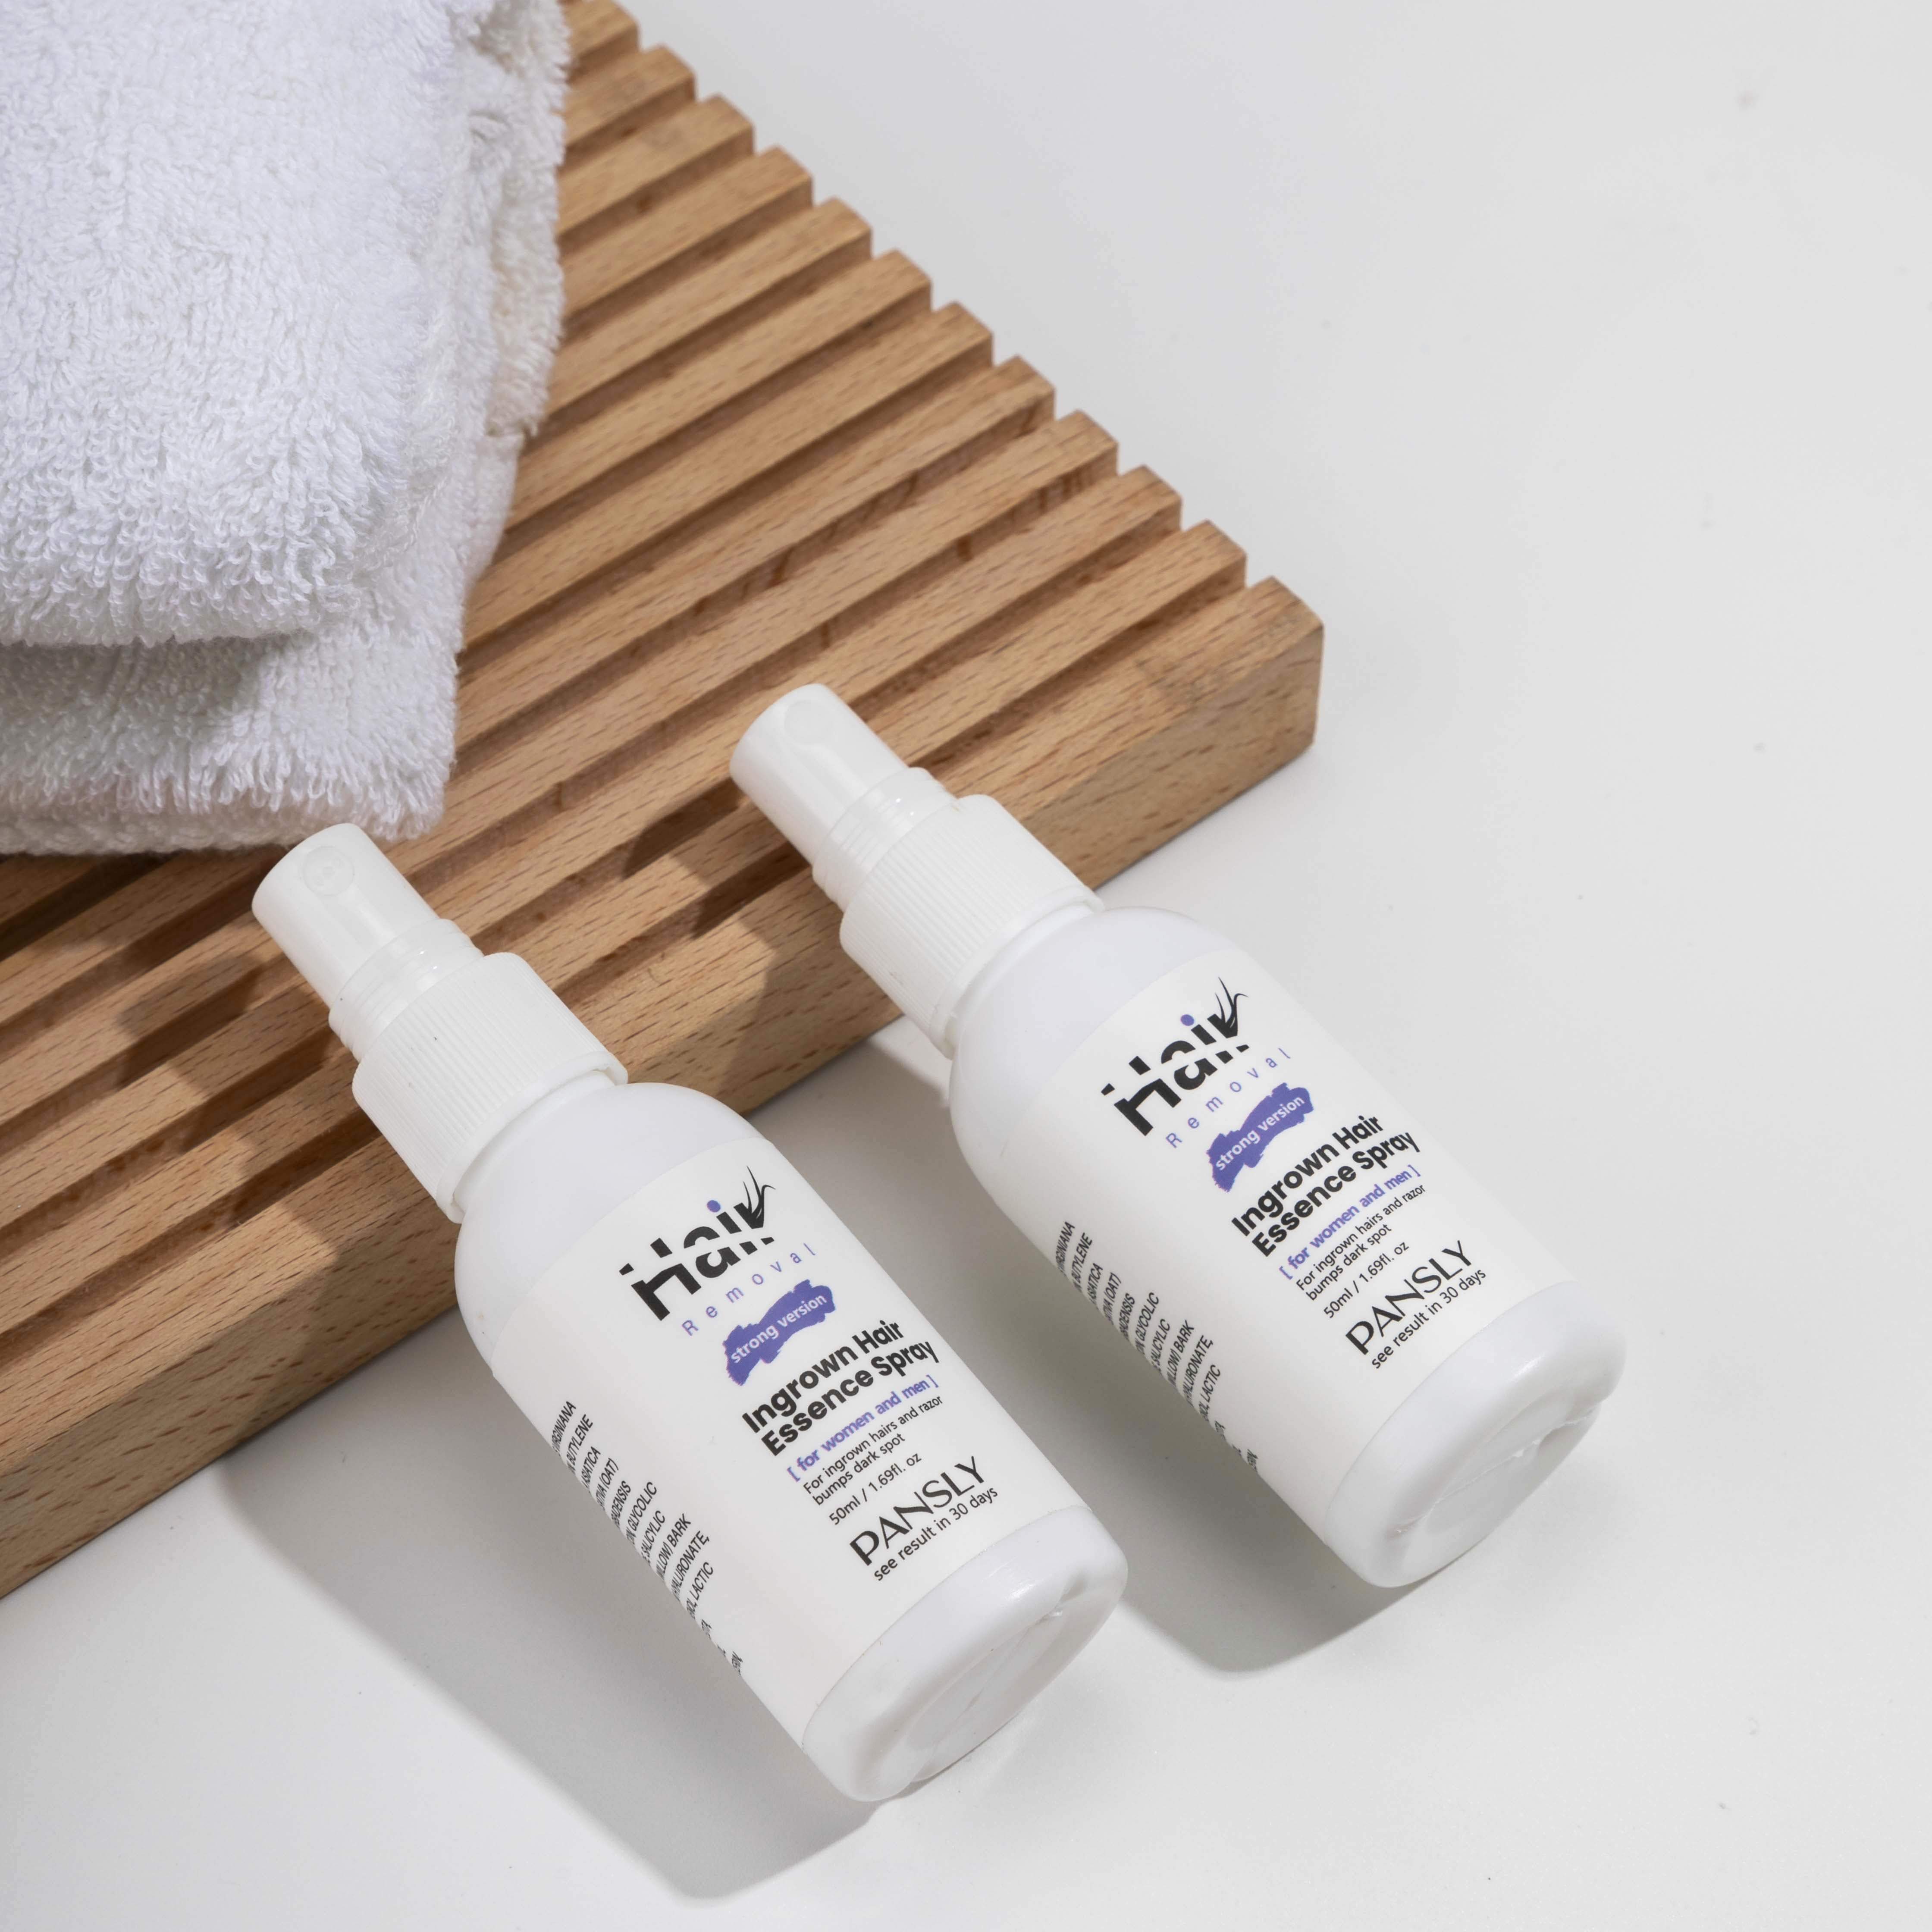 Pansly Lavender All Natural Removal Skin Solution Roll On Treatment Razor Bump Stopper After Shave Ingrown Hair Serum